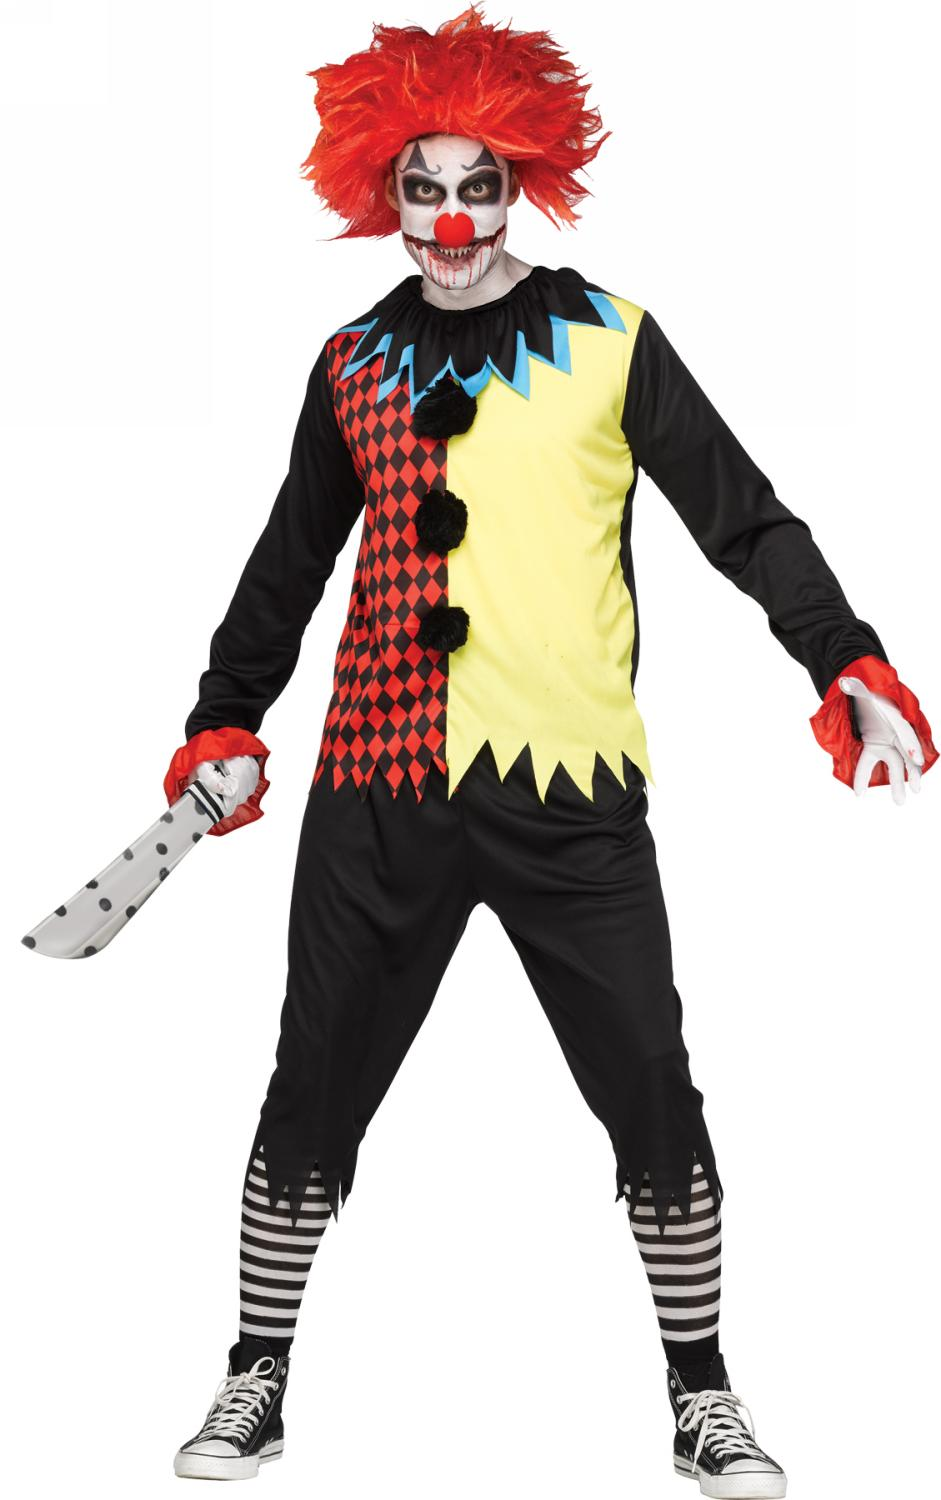 941x1500 Evil Scary Clowns Scary Clown Costumes